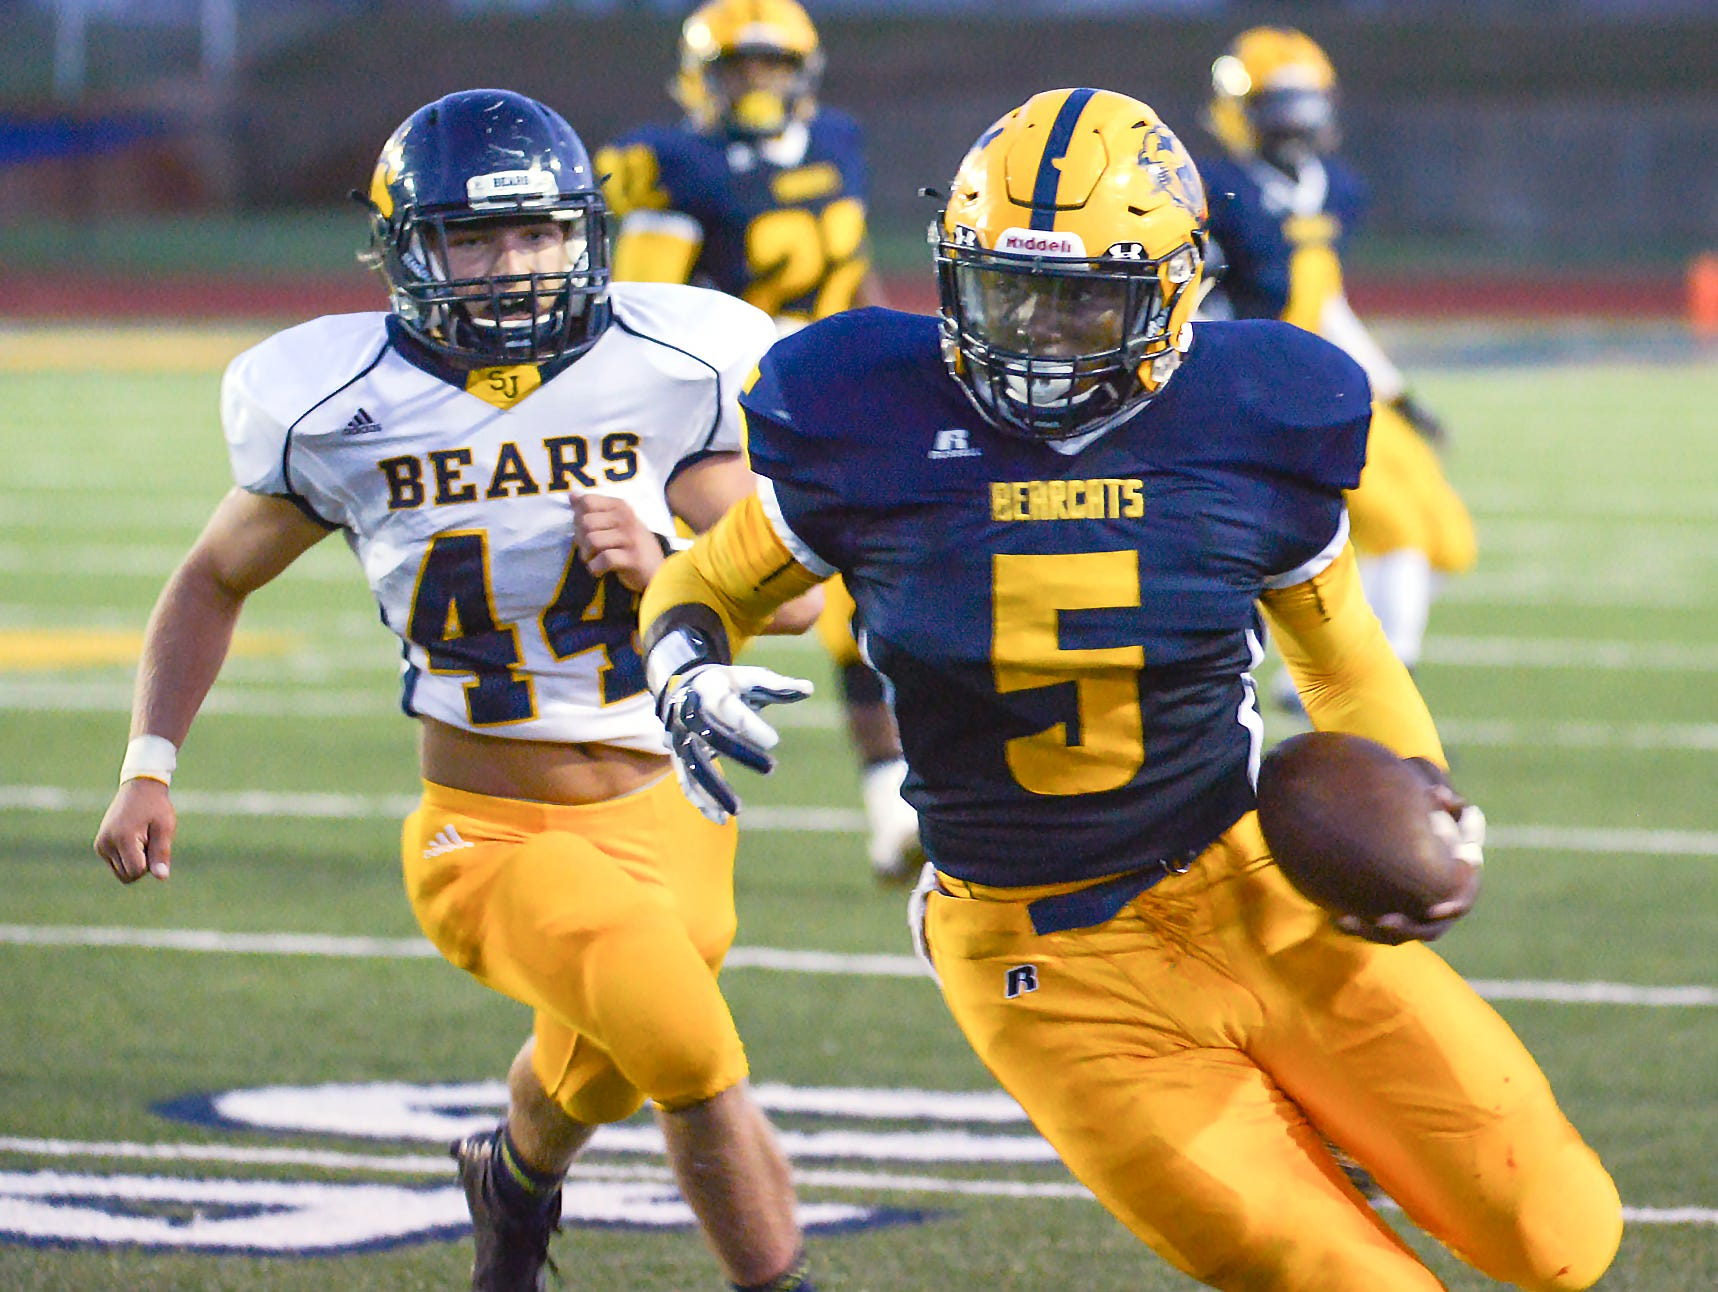 Central's RB Brandon Randle catches a pass and rushes for positive yards Friday night as Battle Creek faces St. Joseph Bears.